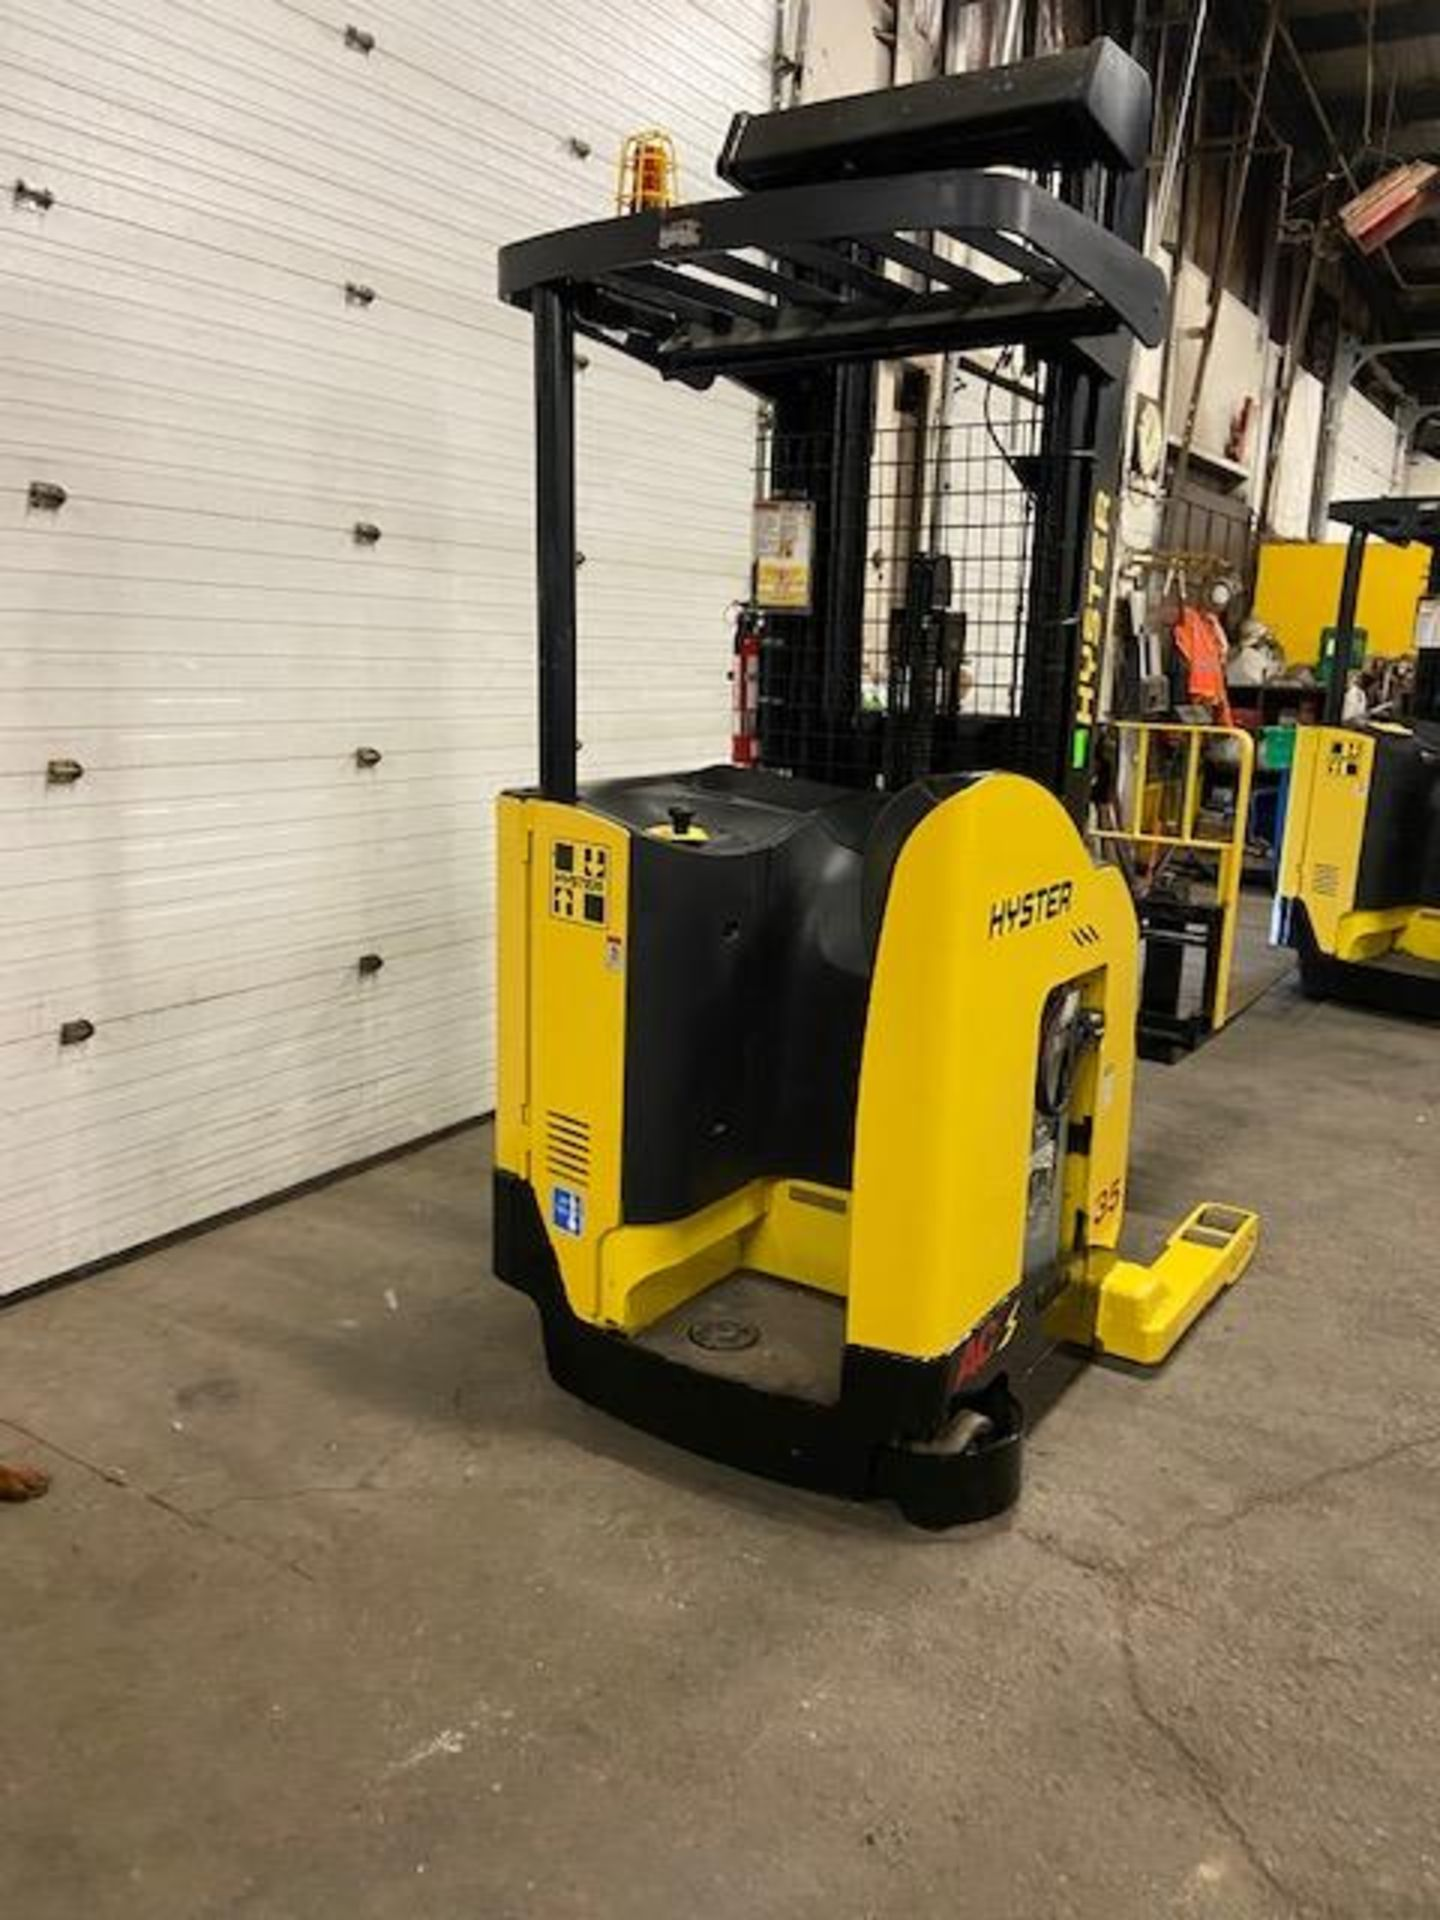 FREE CUSTOMS - 2012 Hyster Reach Truck Pallet Lifter REACH TRUCK electric 3500lbs with sideshift 3- - Image 2 of 3